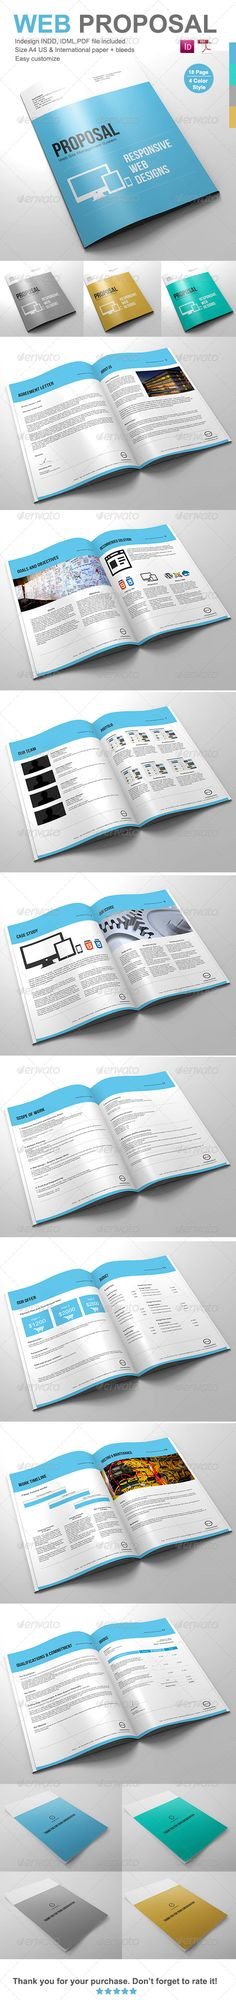 Clean Digital Marketing Proposal | Marketing Proposal, Proposal